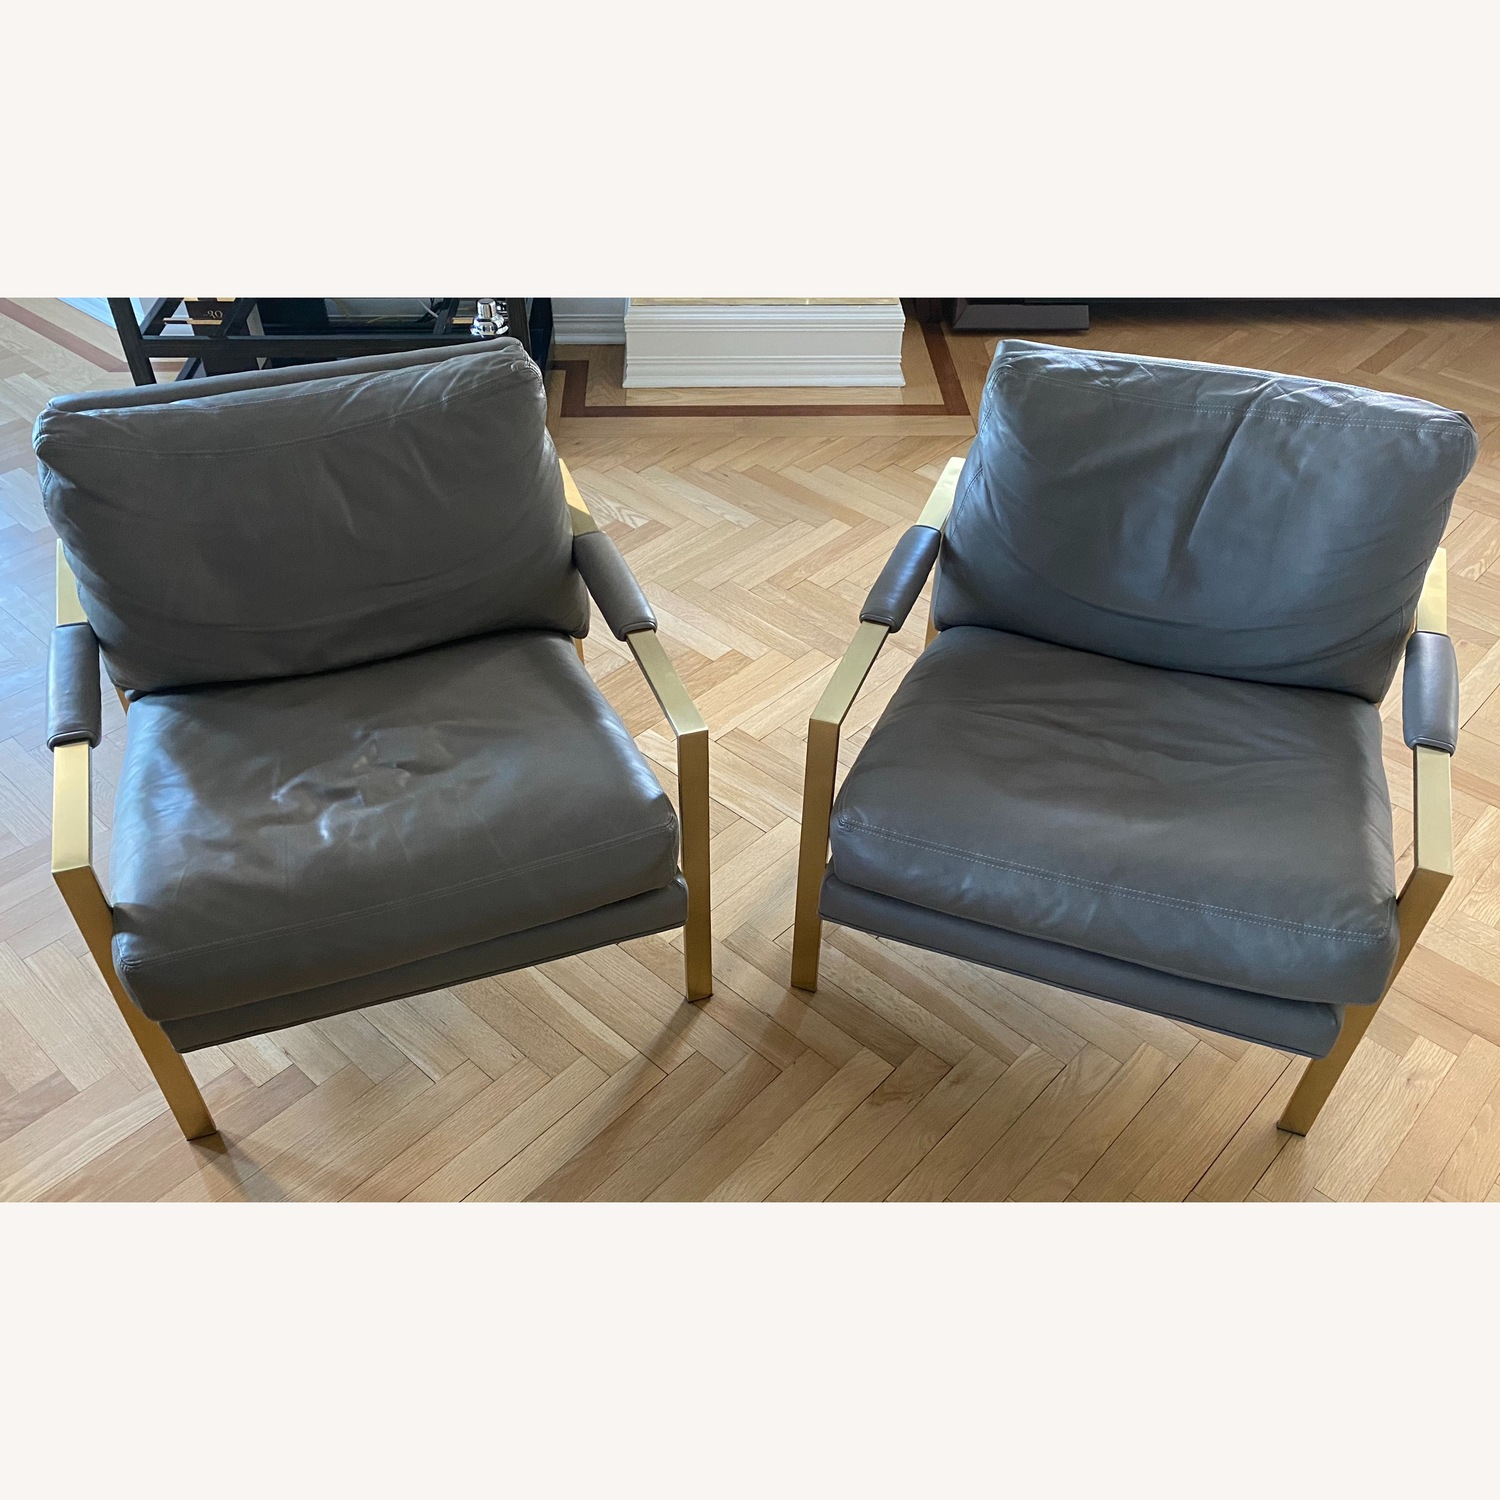 Restoration Hardware Satin Brass Armchair (Set of 2) - image-1